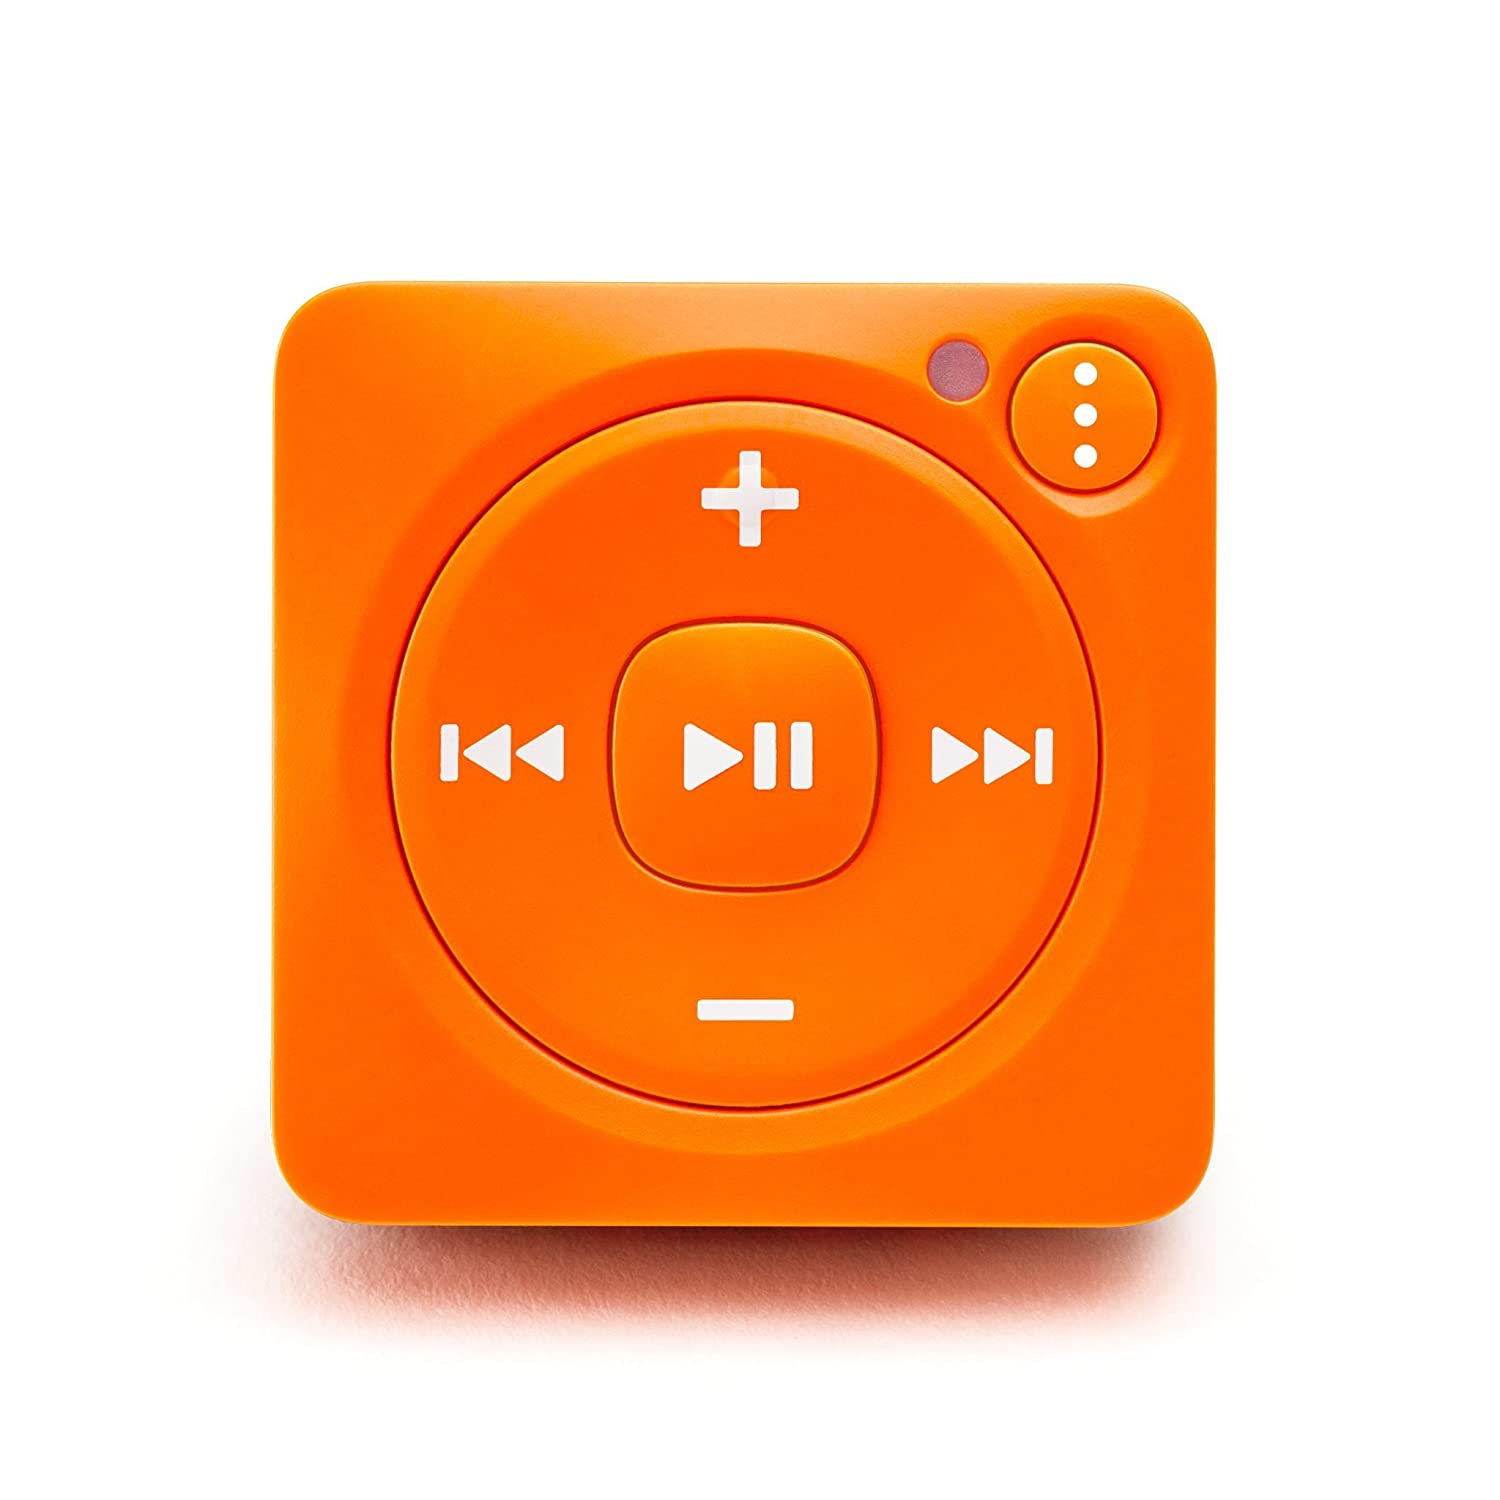 Mighty Audio Reproductor De Música Spotify Naranja triturada